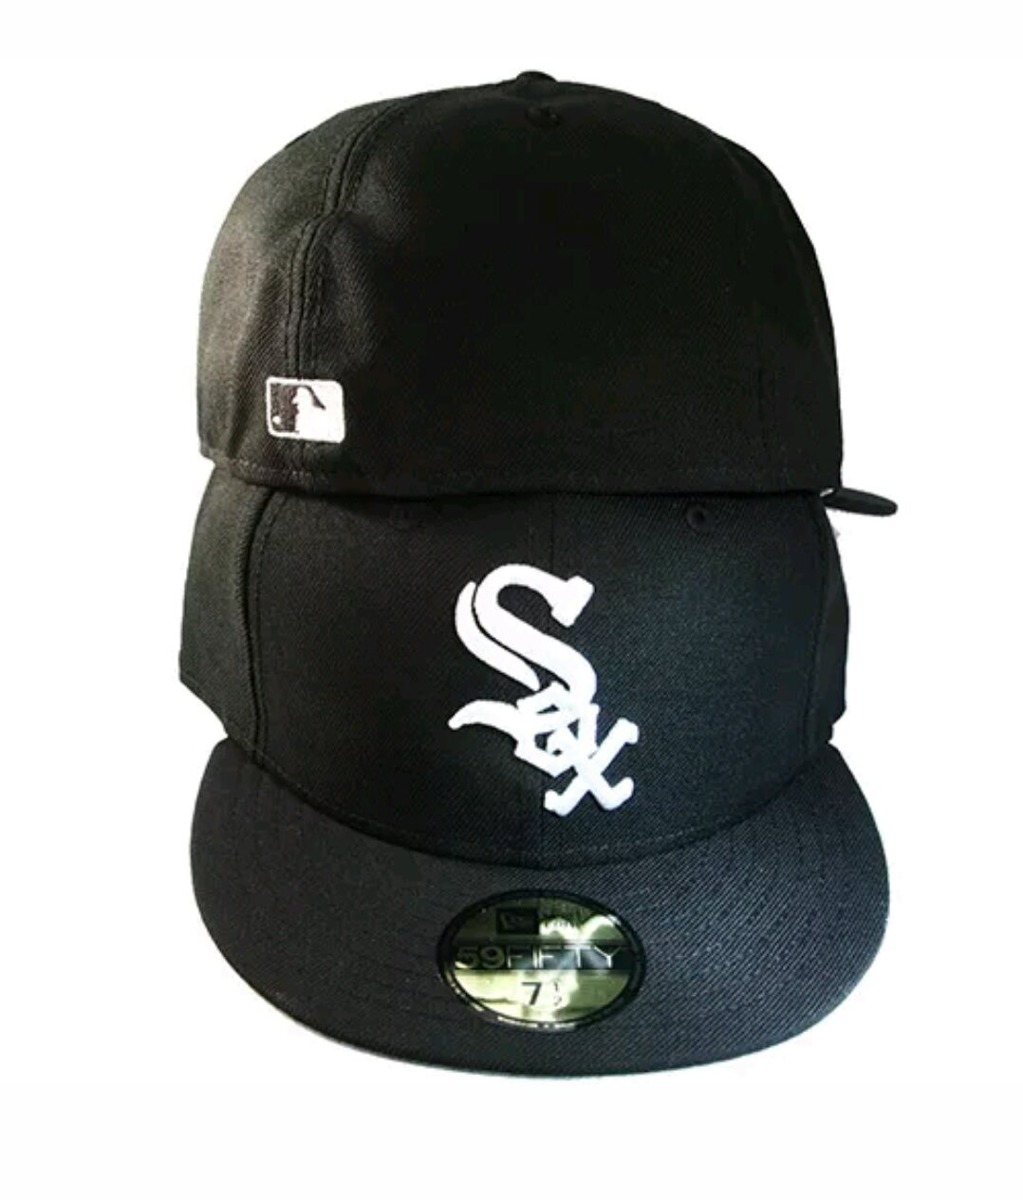 f80cf88557e38 Gorra New Era Original Mlb Chicago White Sox -   130.000 en Mercado ...